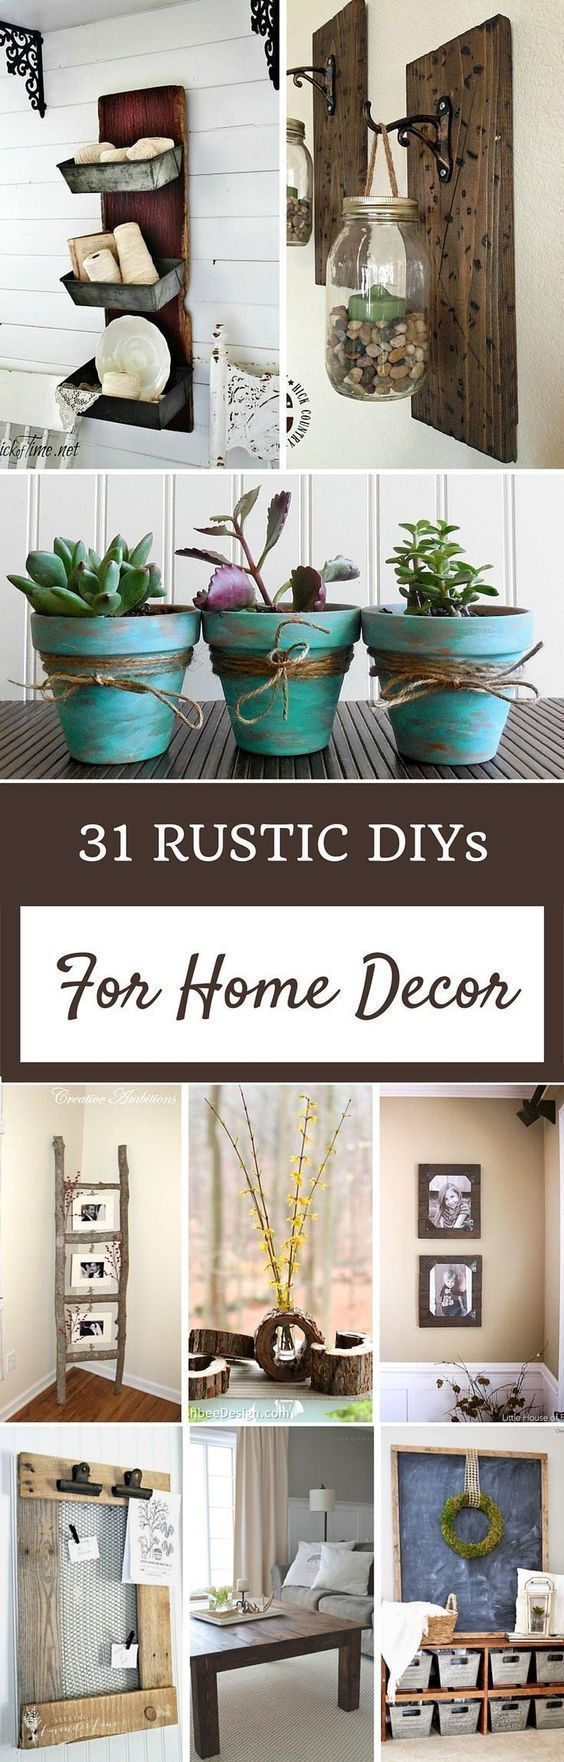 31 rustic diy home decor projects apartments decorating living 31 rustic diy home decor projects solutioingenieria Gallery